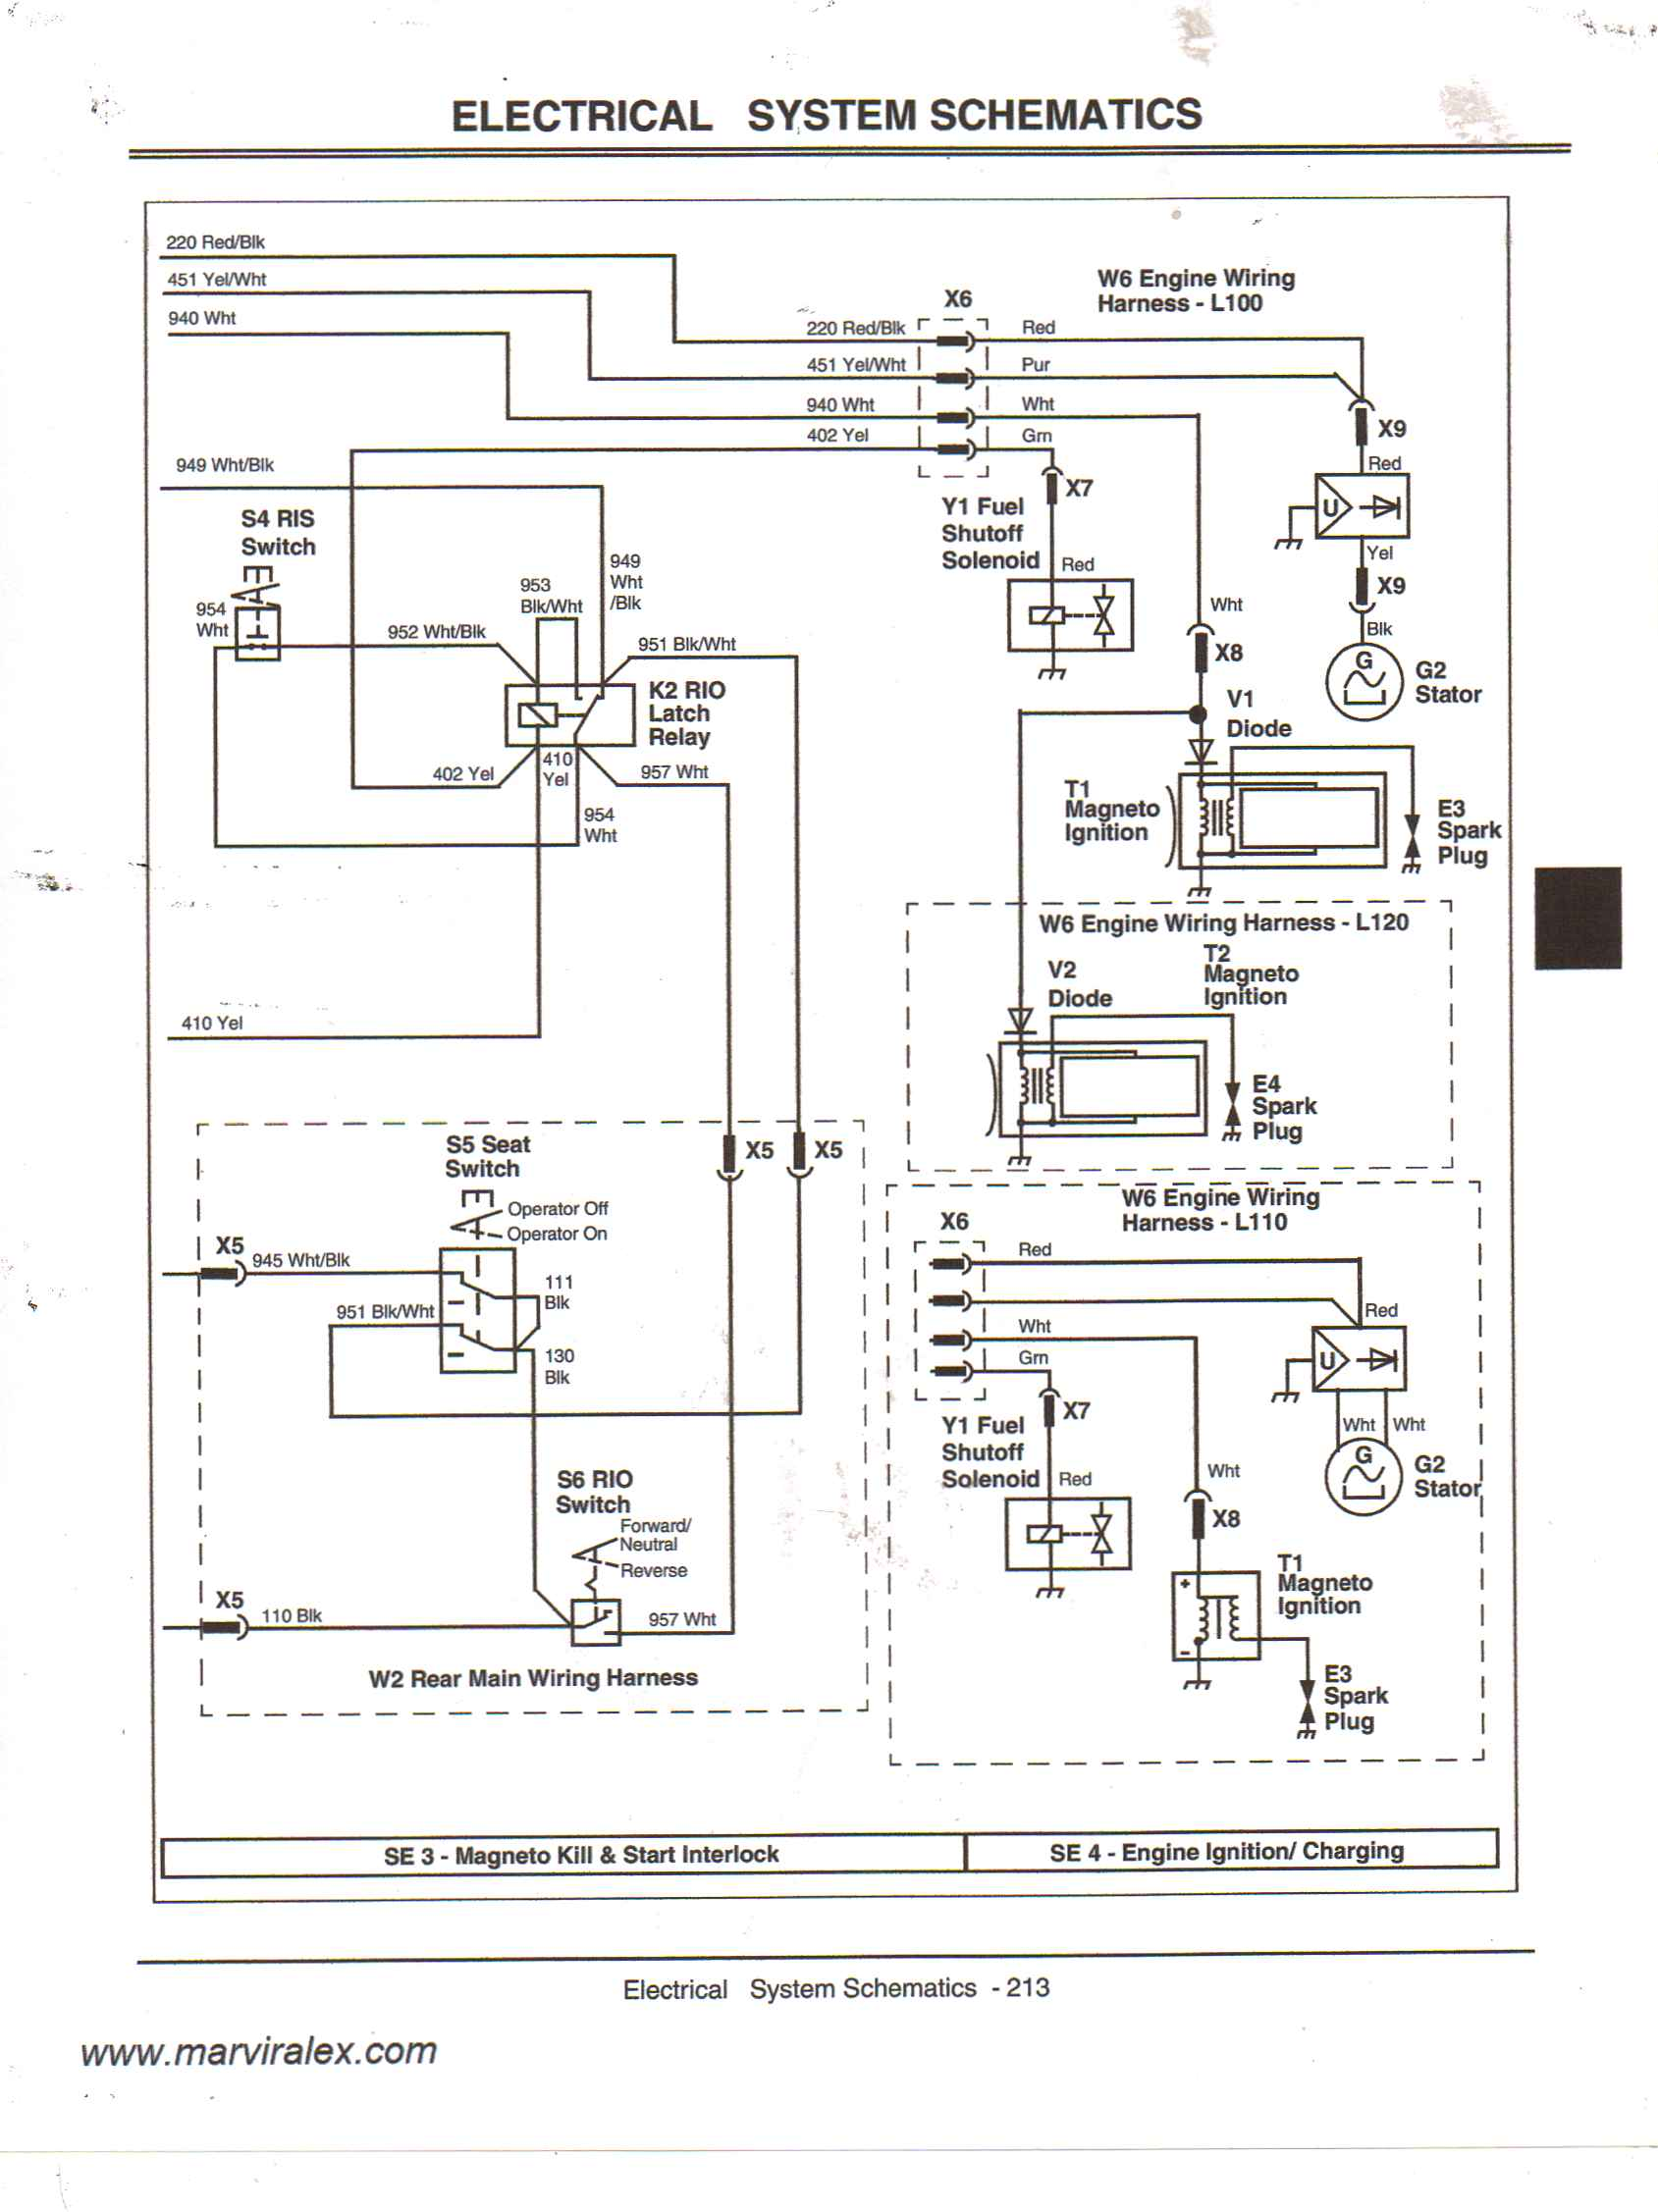 john deere 2010 wiring diagram free download john deere d110 wiring diagram i need a wiring diagram for a deere d110 riding mower